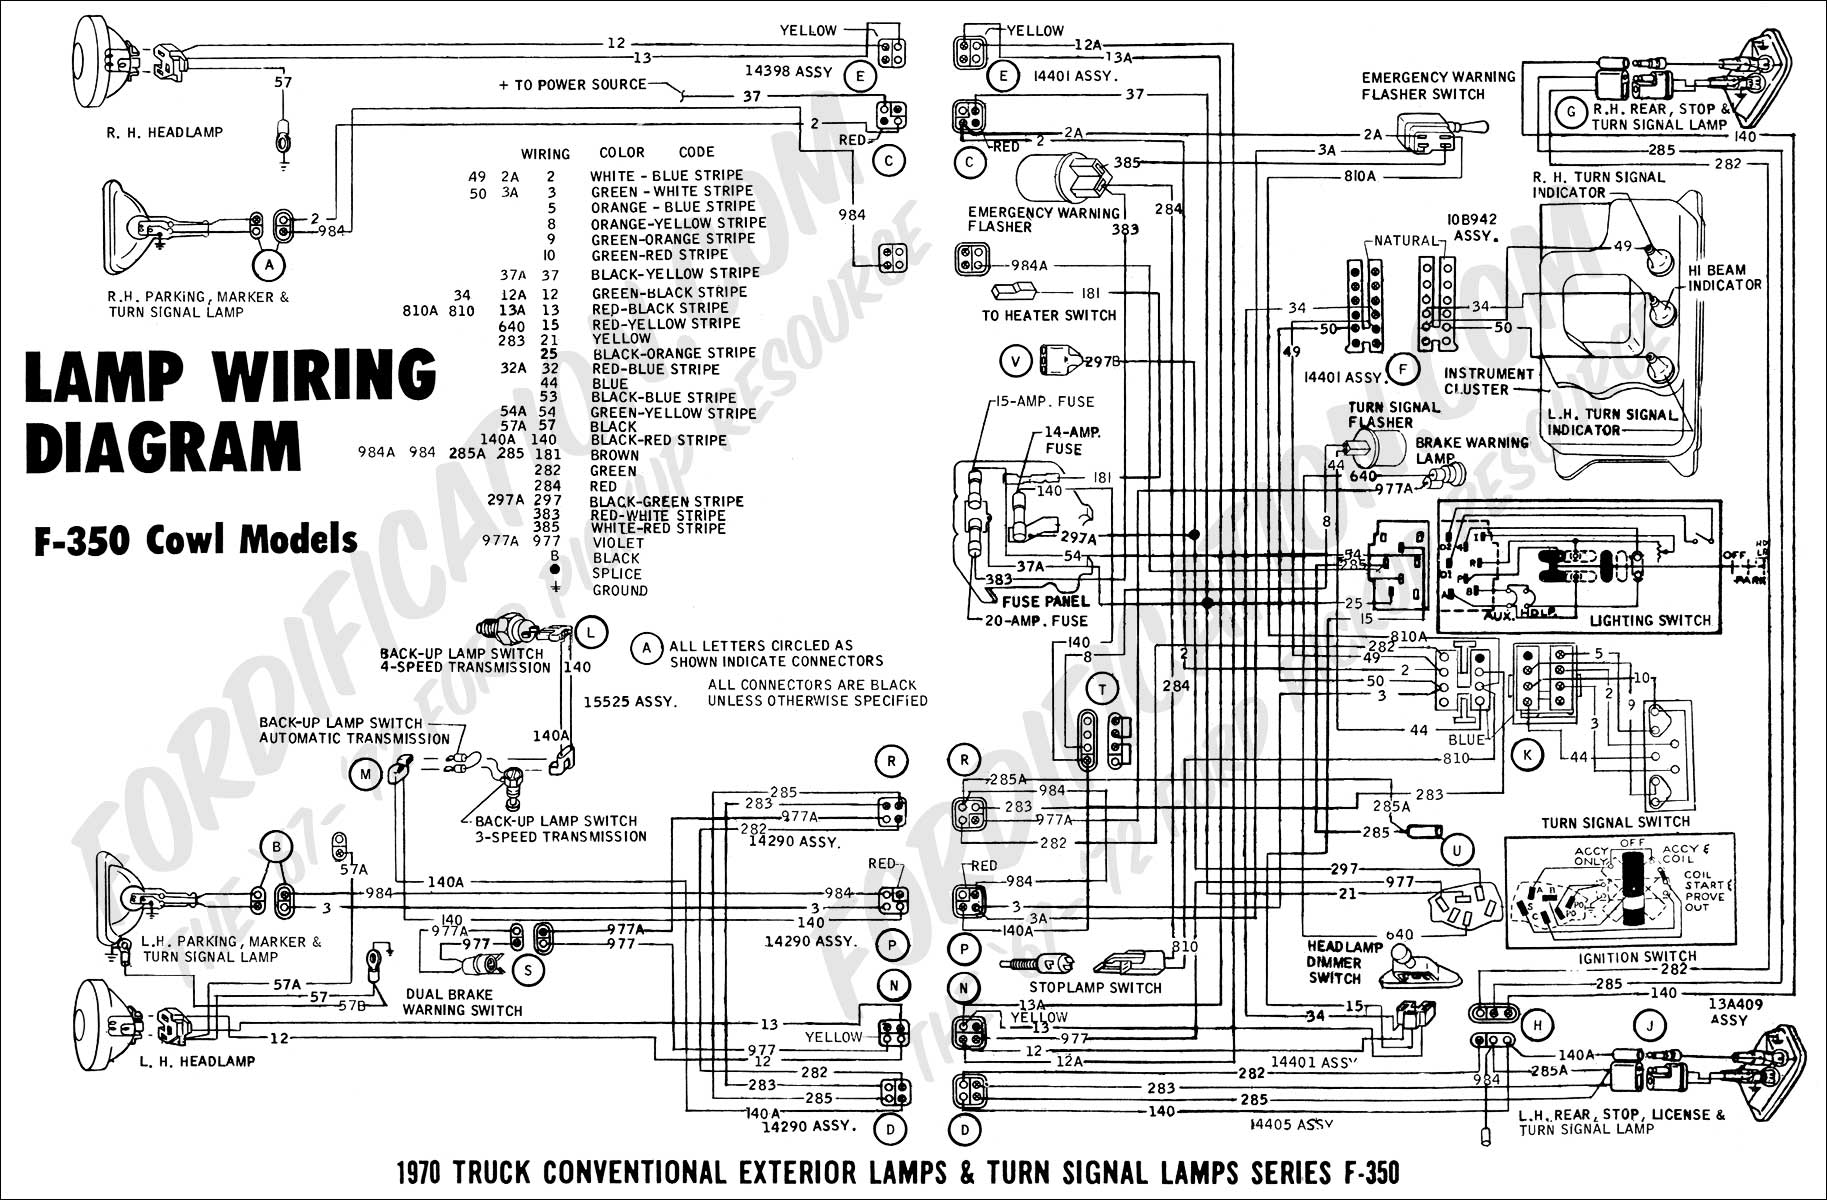 Swell 2011 F 350 Super Duty Factory Trailer Wiring Diagram Troubleshooting Wiring Digital Resources Remcakbiperorg